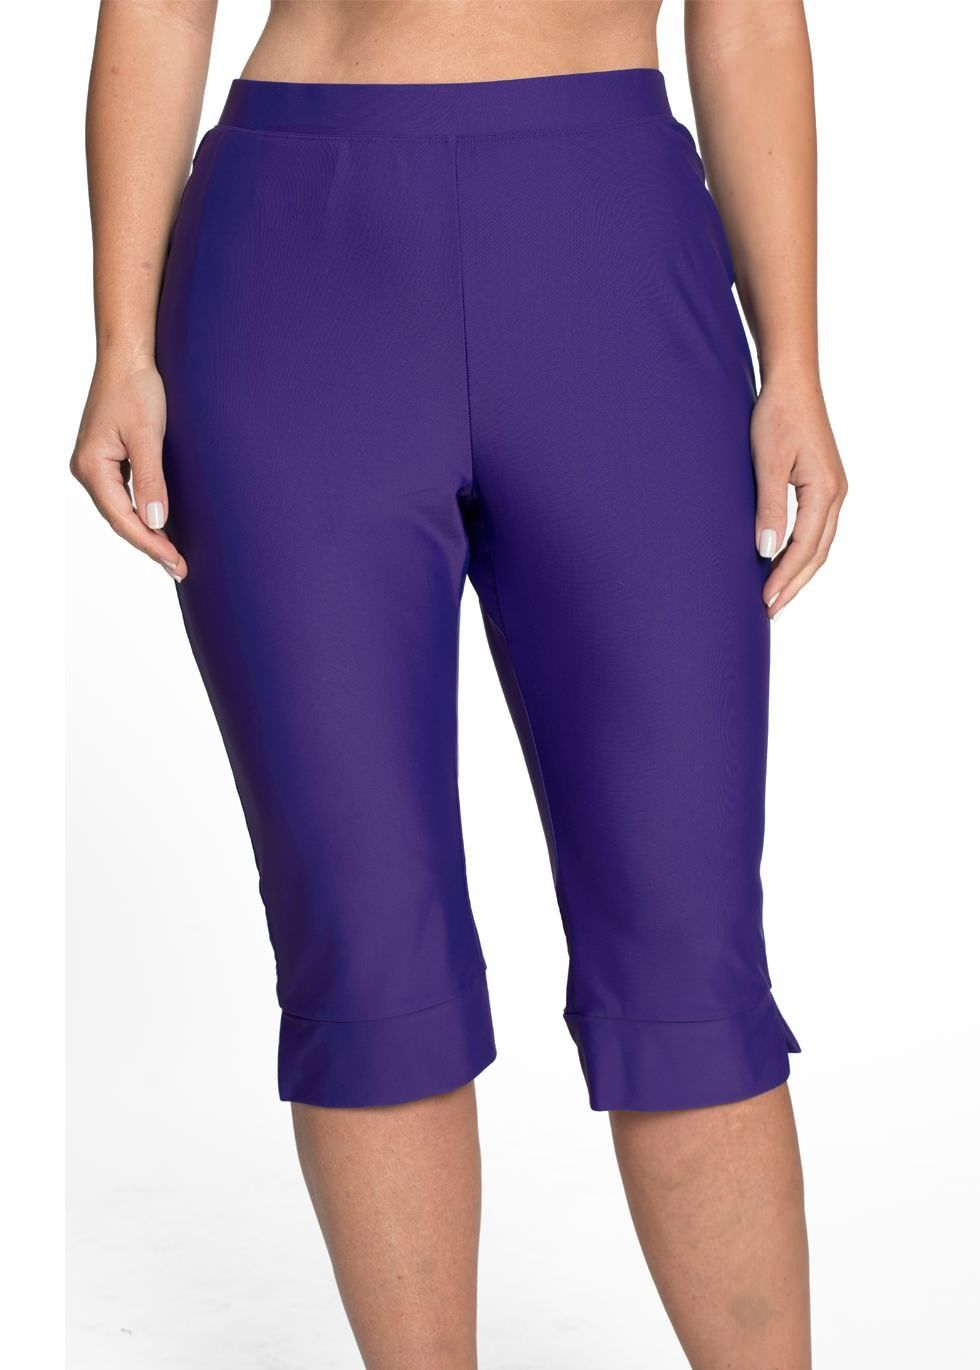 0c1ce8b1ef Slimming swim and bike shorts, below the knee pedal pusher styled, are  super comfy, light weight and quick drying. A staple for any wardrobe - you  can wear ...